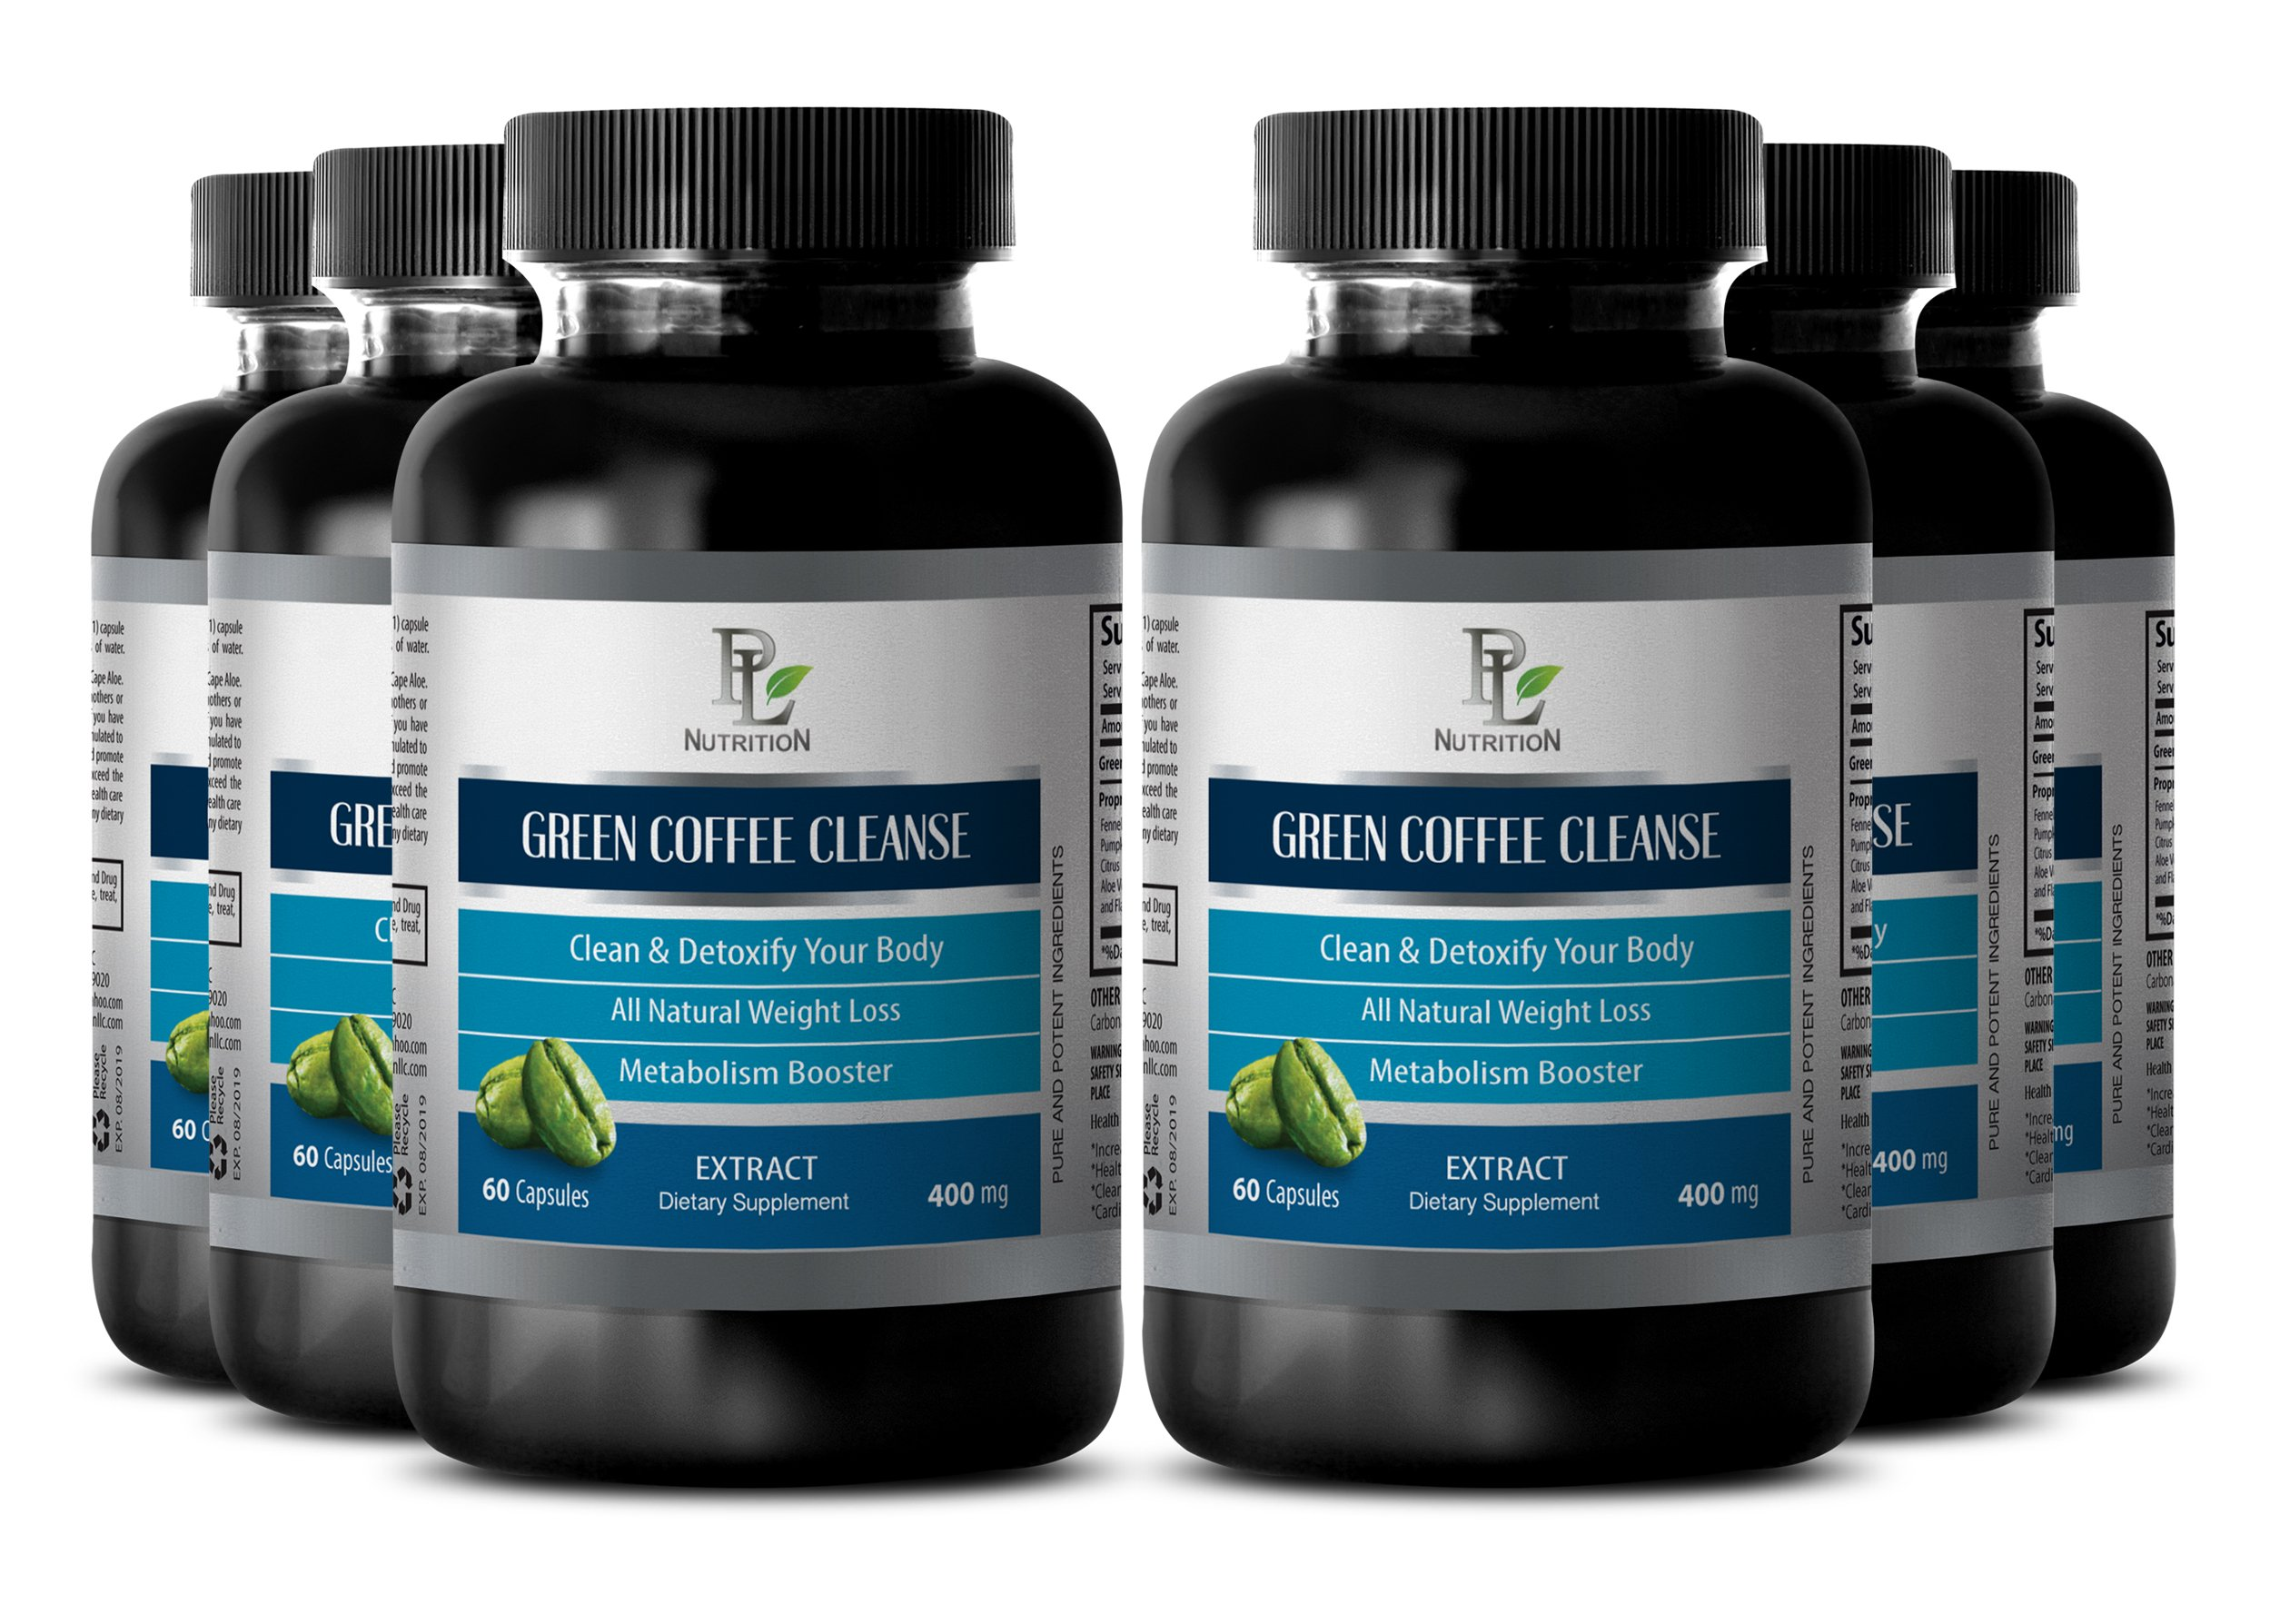 Skin health supplements - GREEN COFFEE CLEANSE - Green coffee power - 6 Bottle 360 Capsules